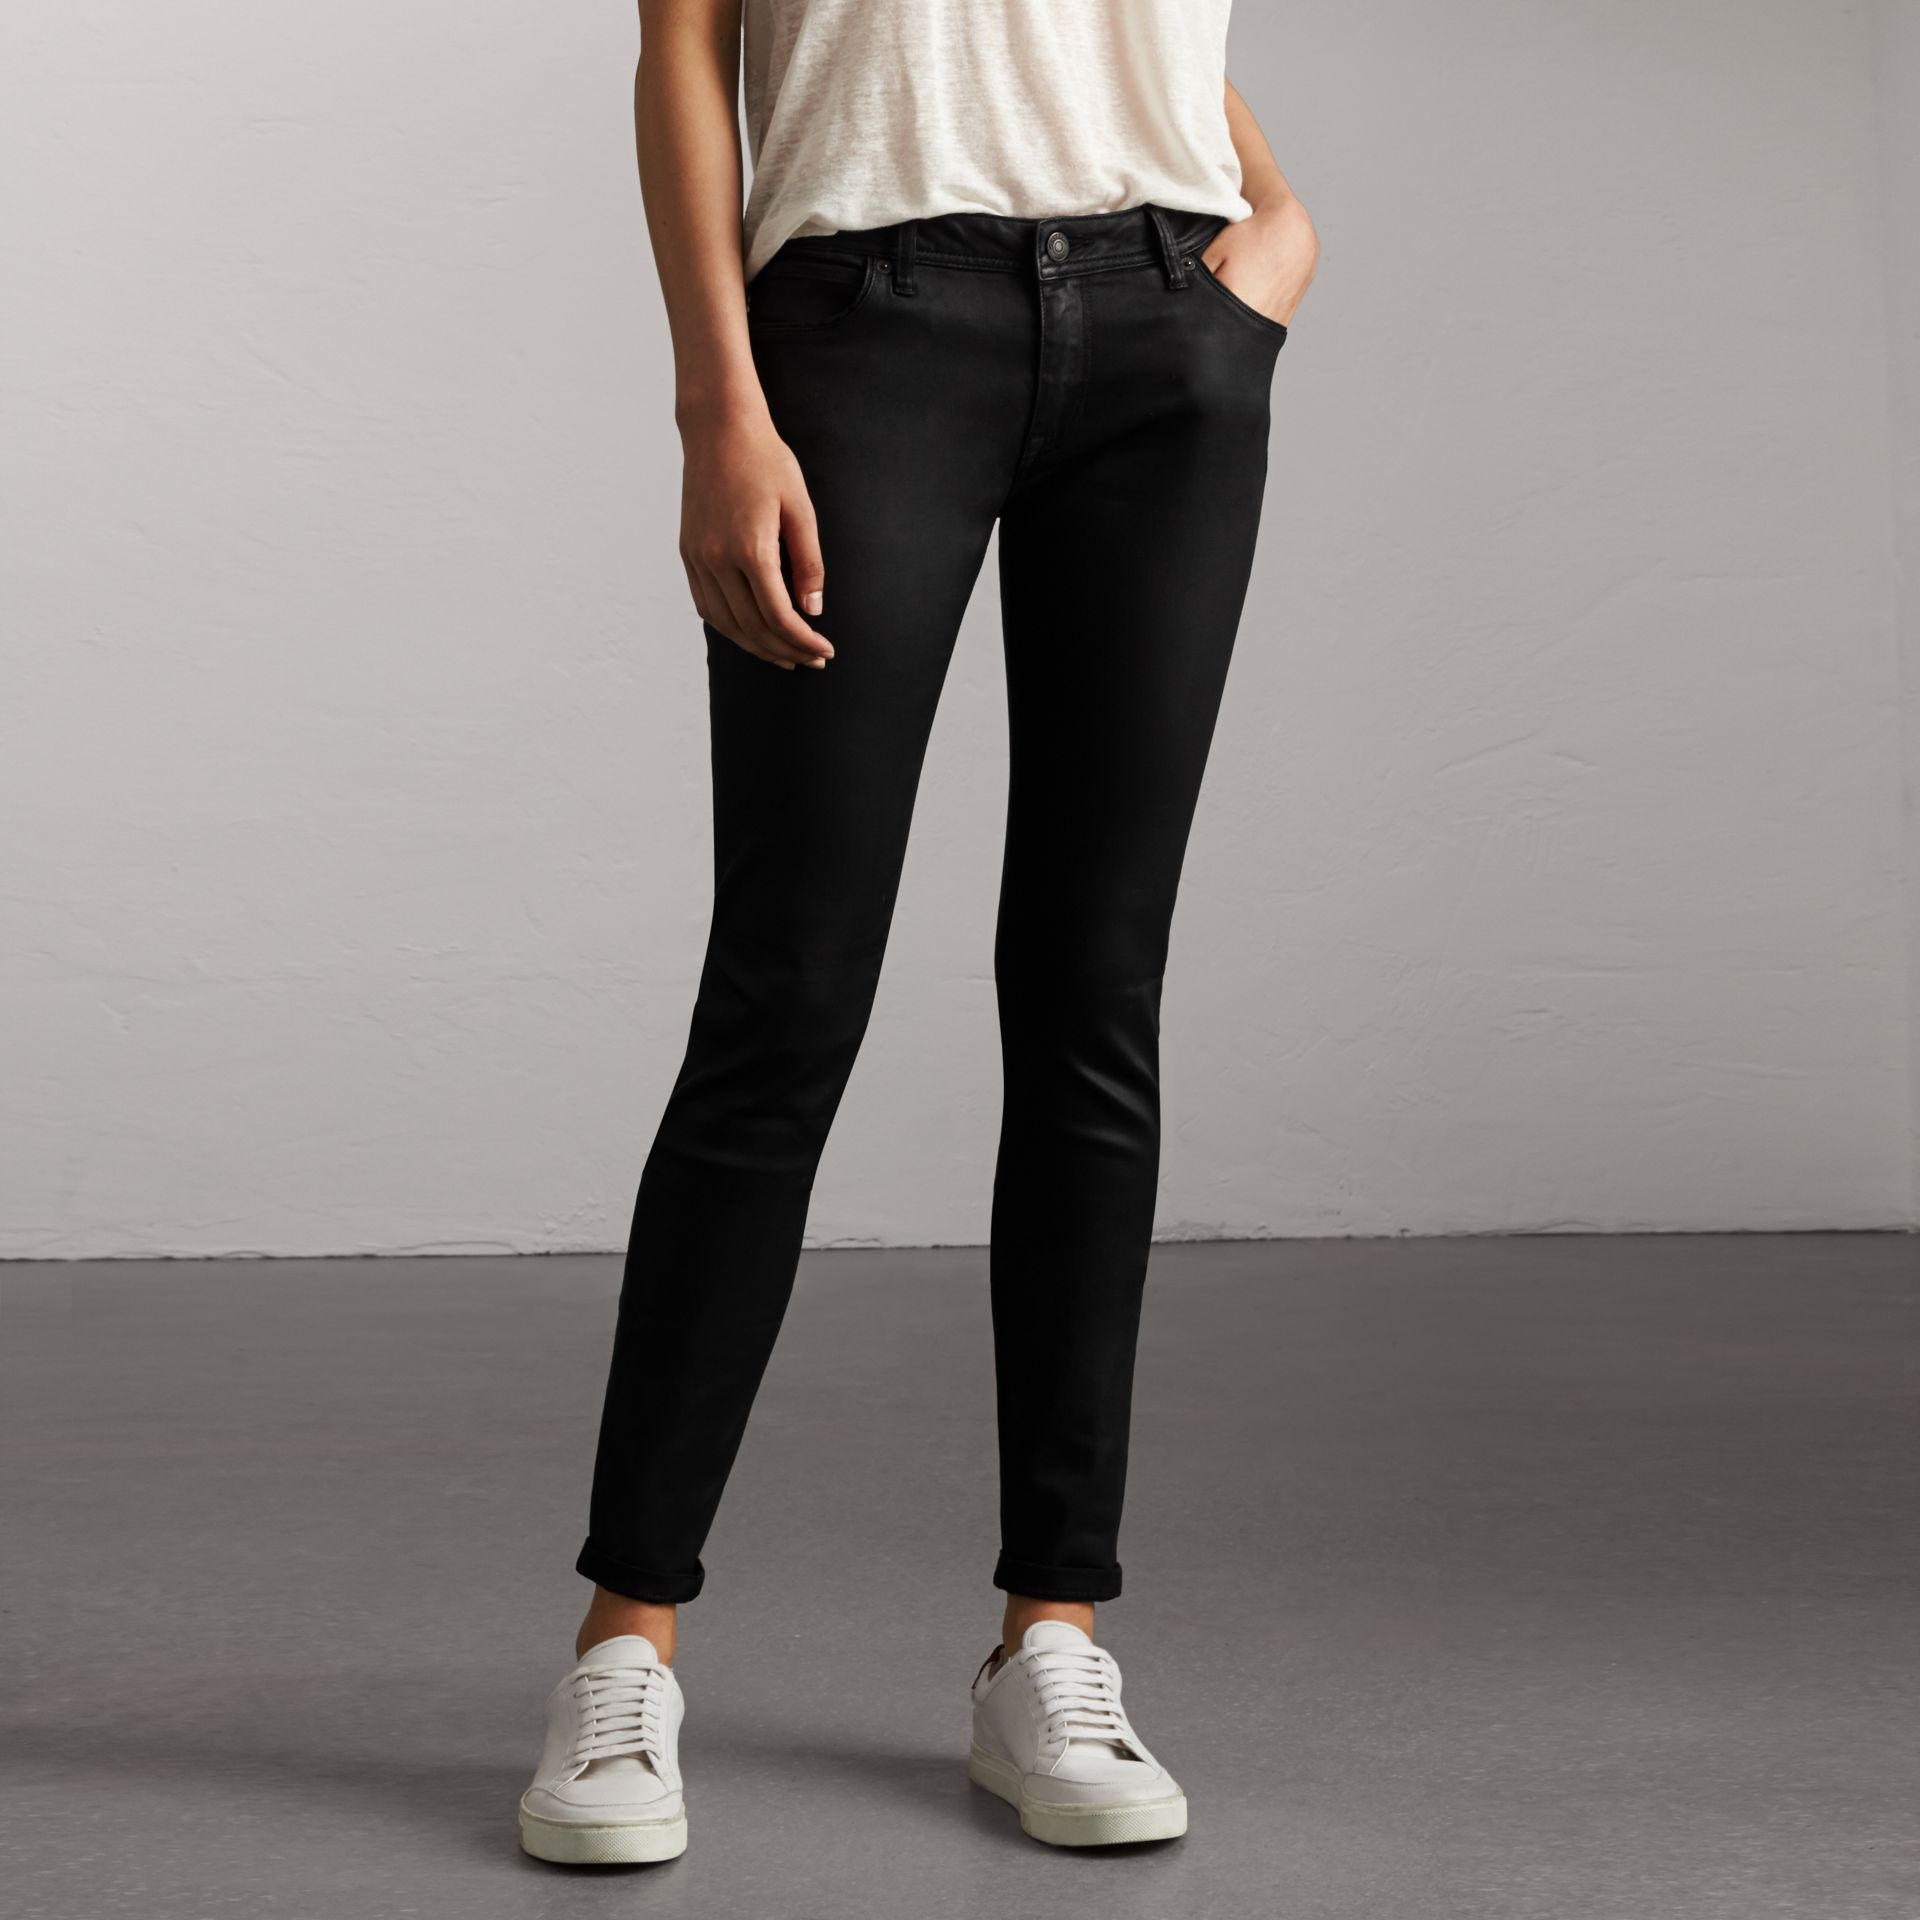 Skinny Fit Low-rise Wax Coated Jeans in Black - Women | Burberry Singapore - gallery image 0